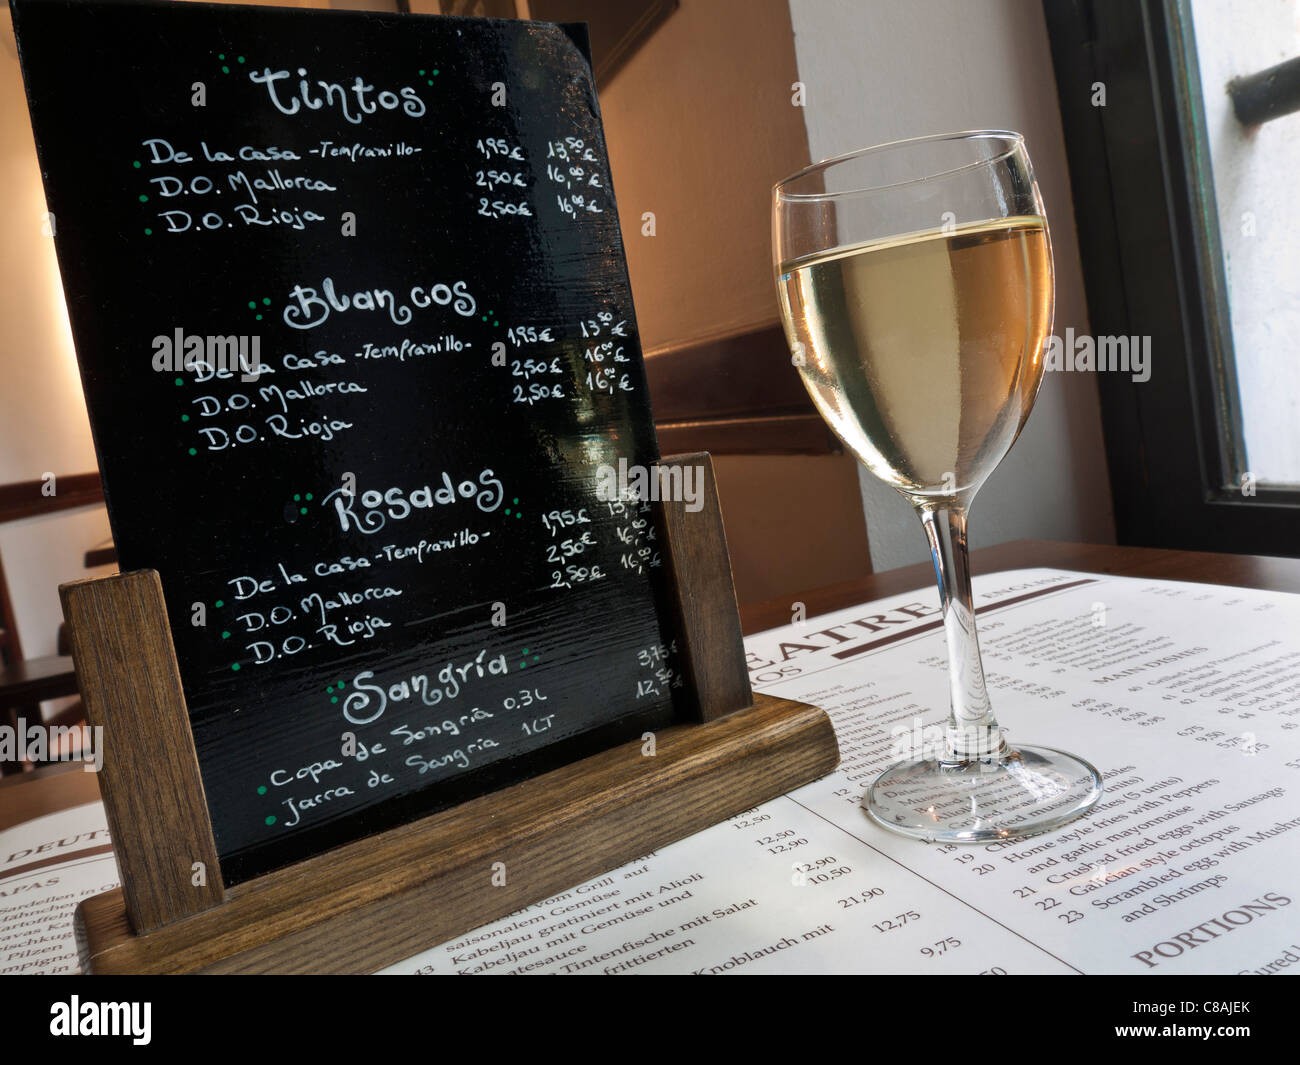 Blackboard wine list table glass of white mallorcan wine for Table 52 drink menu